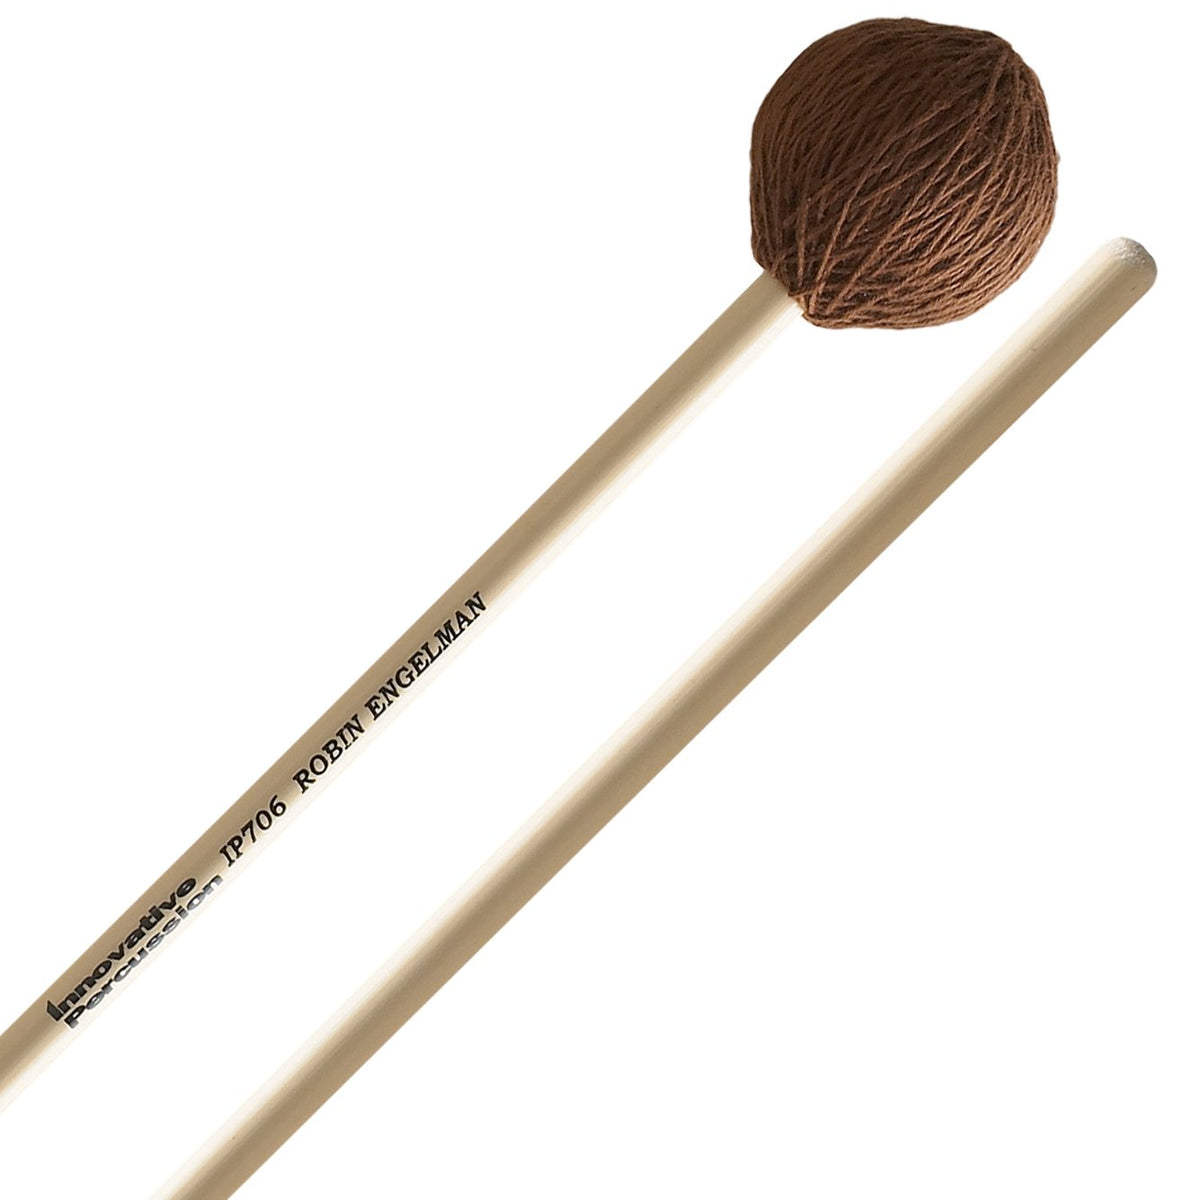 Innovative Percussion - Robin Engelman Series Concert Mallets-Percussion-Innovative Percussion-IP706: Medium/Alto Voice-Music Elements